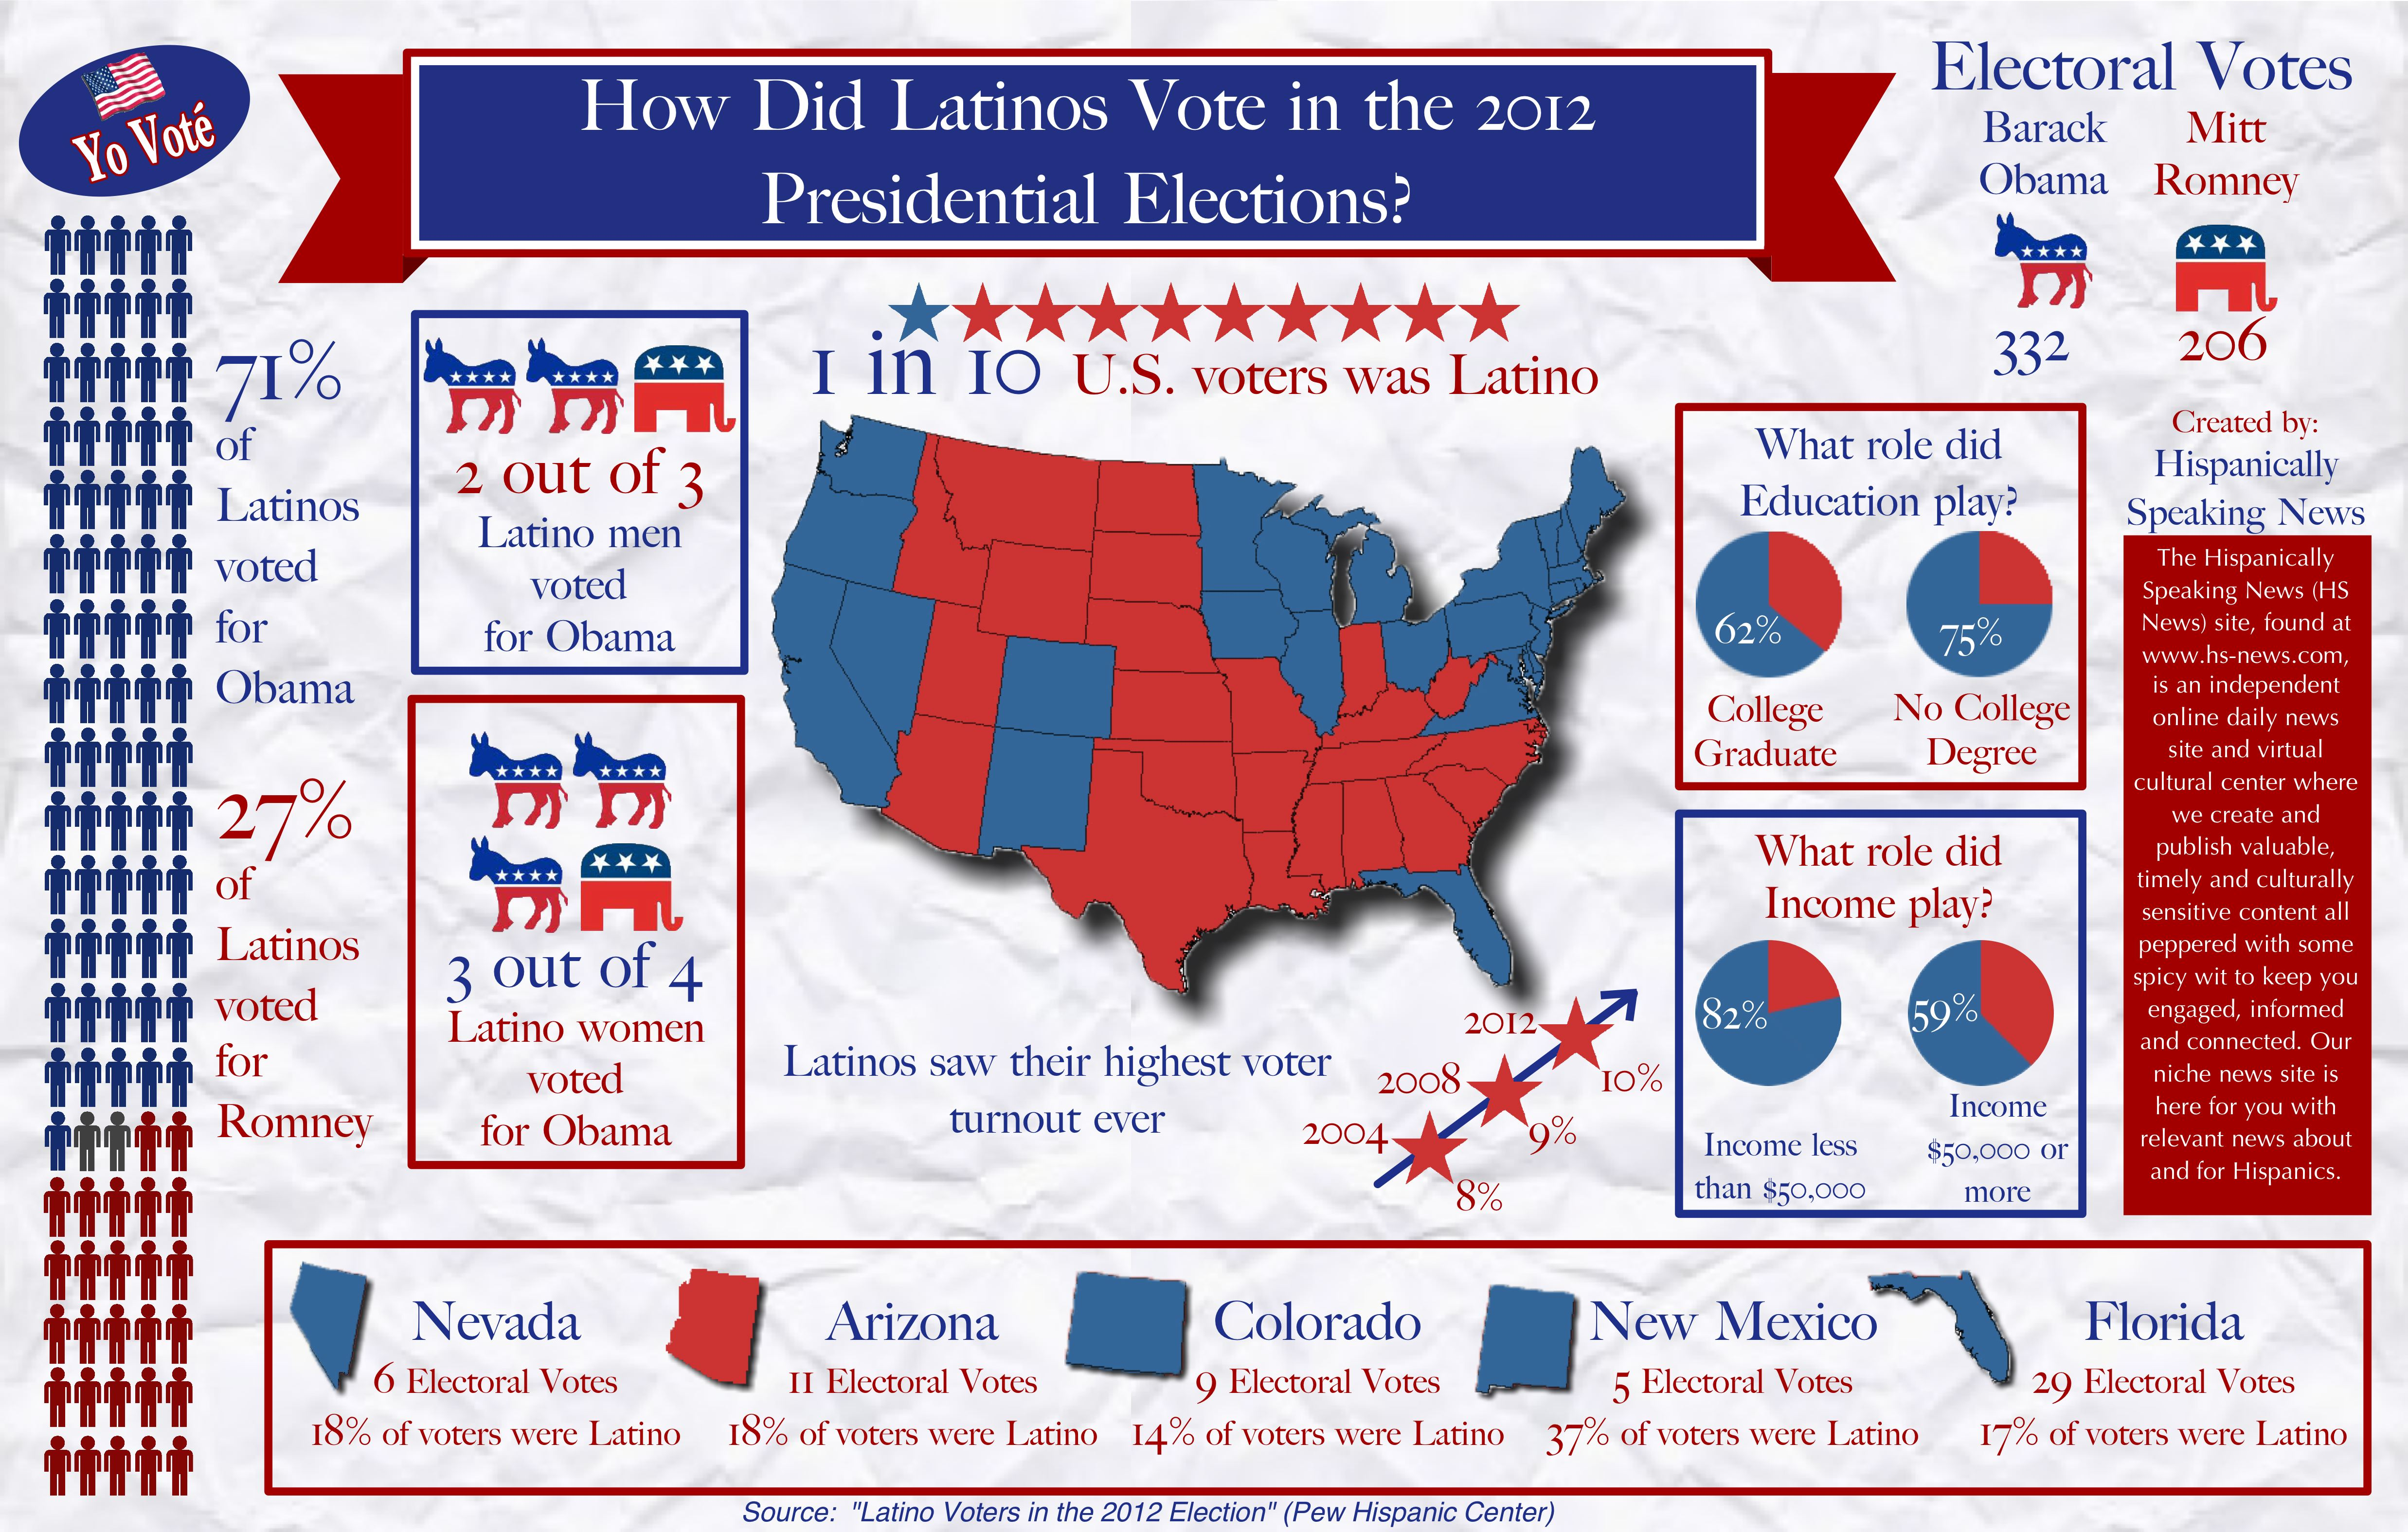 how-did-latinos-vote-in-the-2012-presidential-elections_50a405c33be05